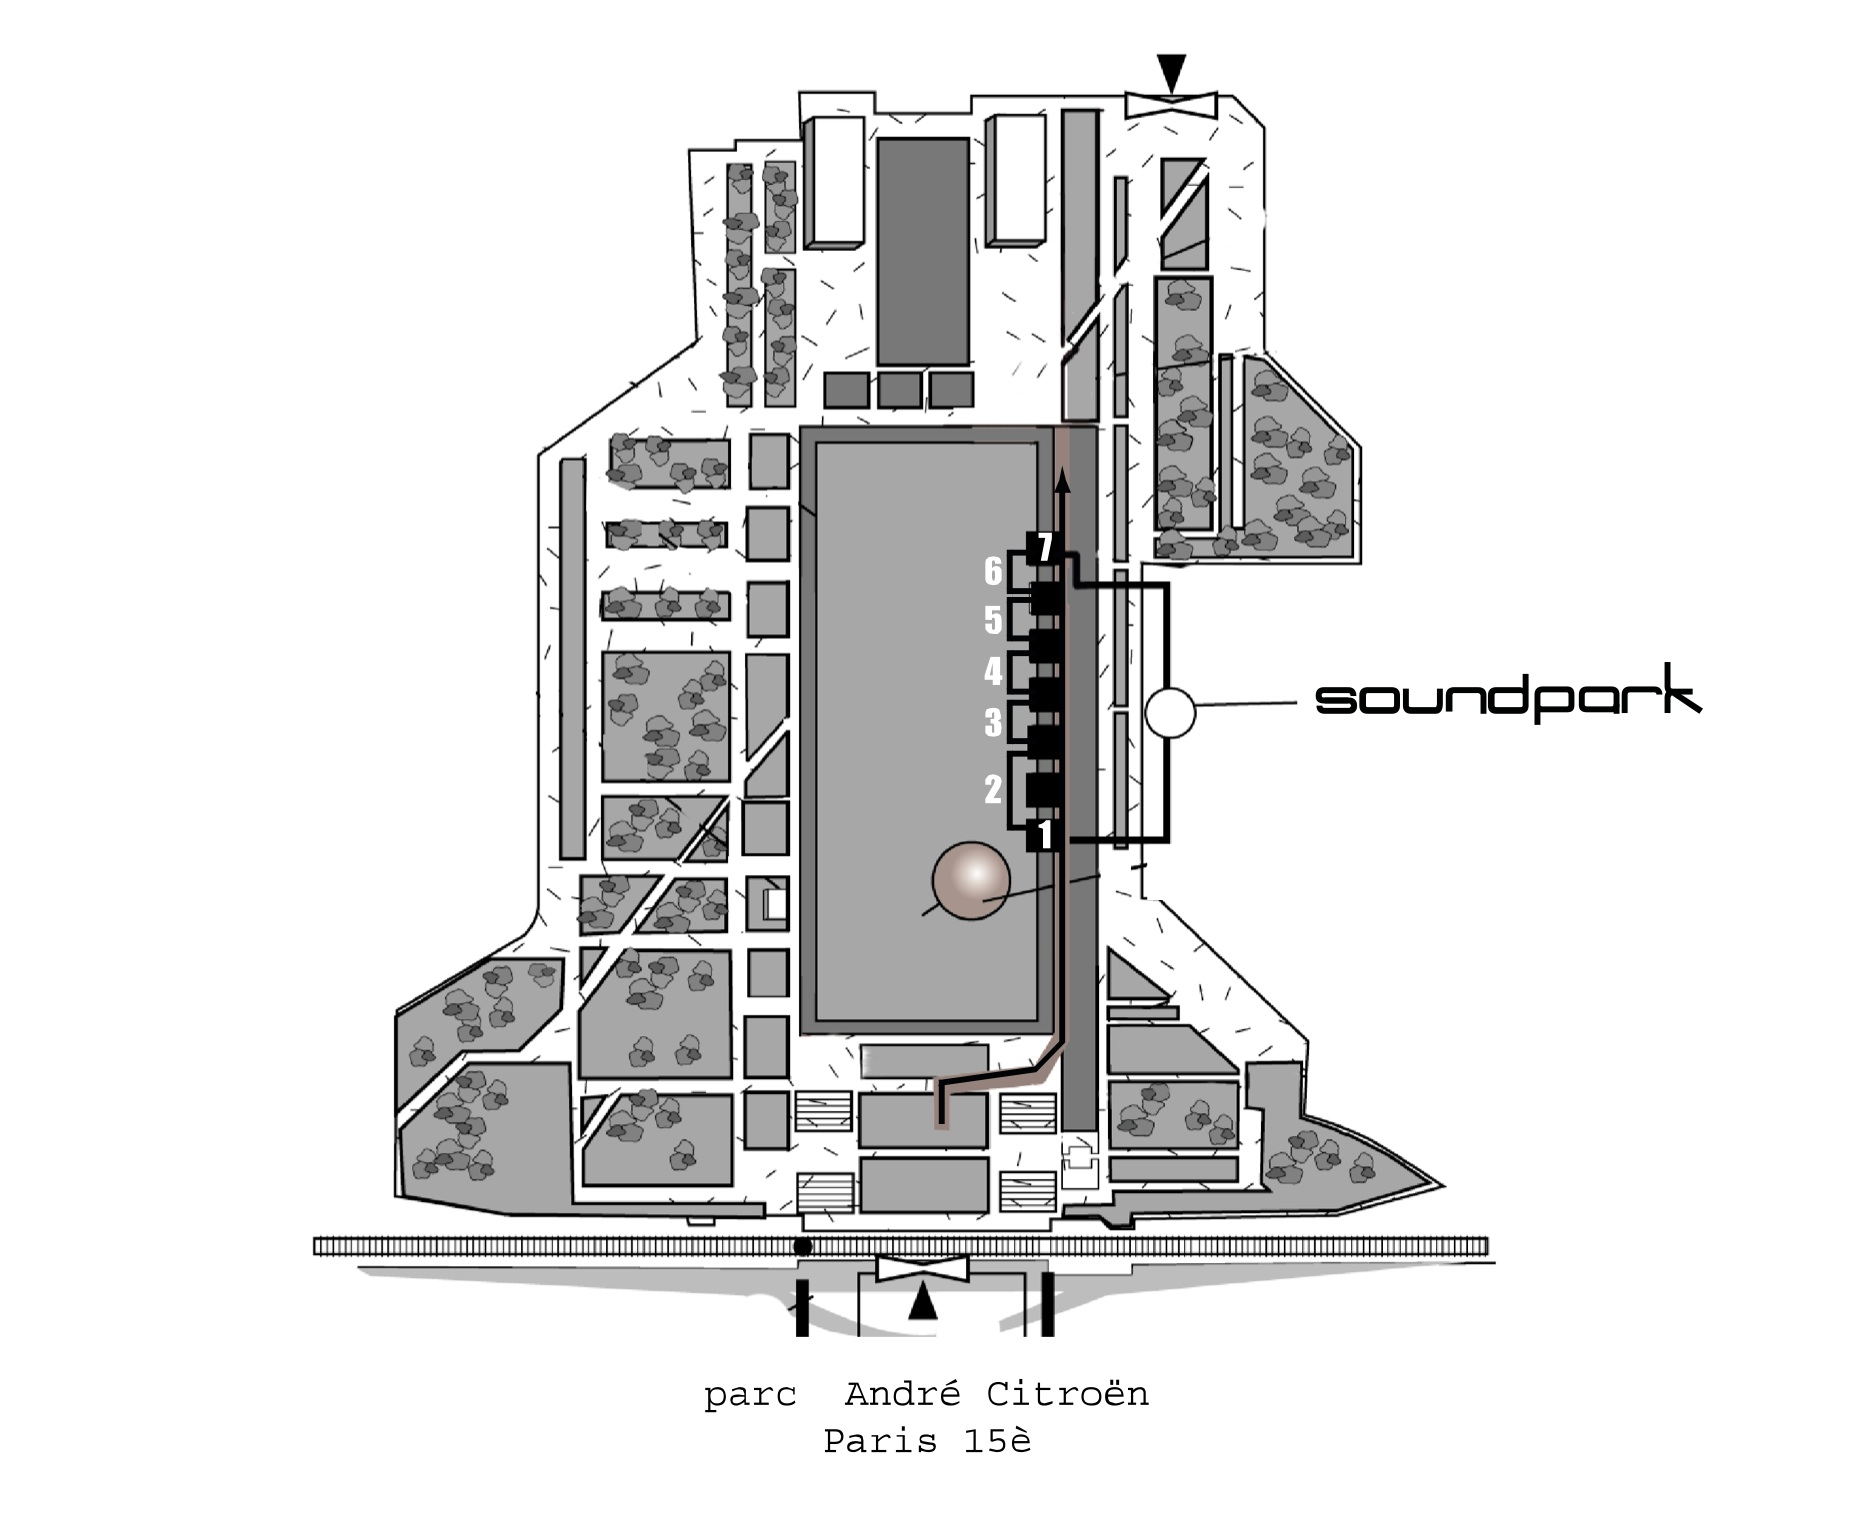 Mu_Soundpark 2006 plan